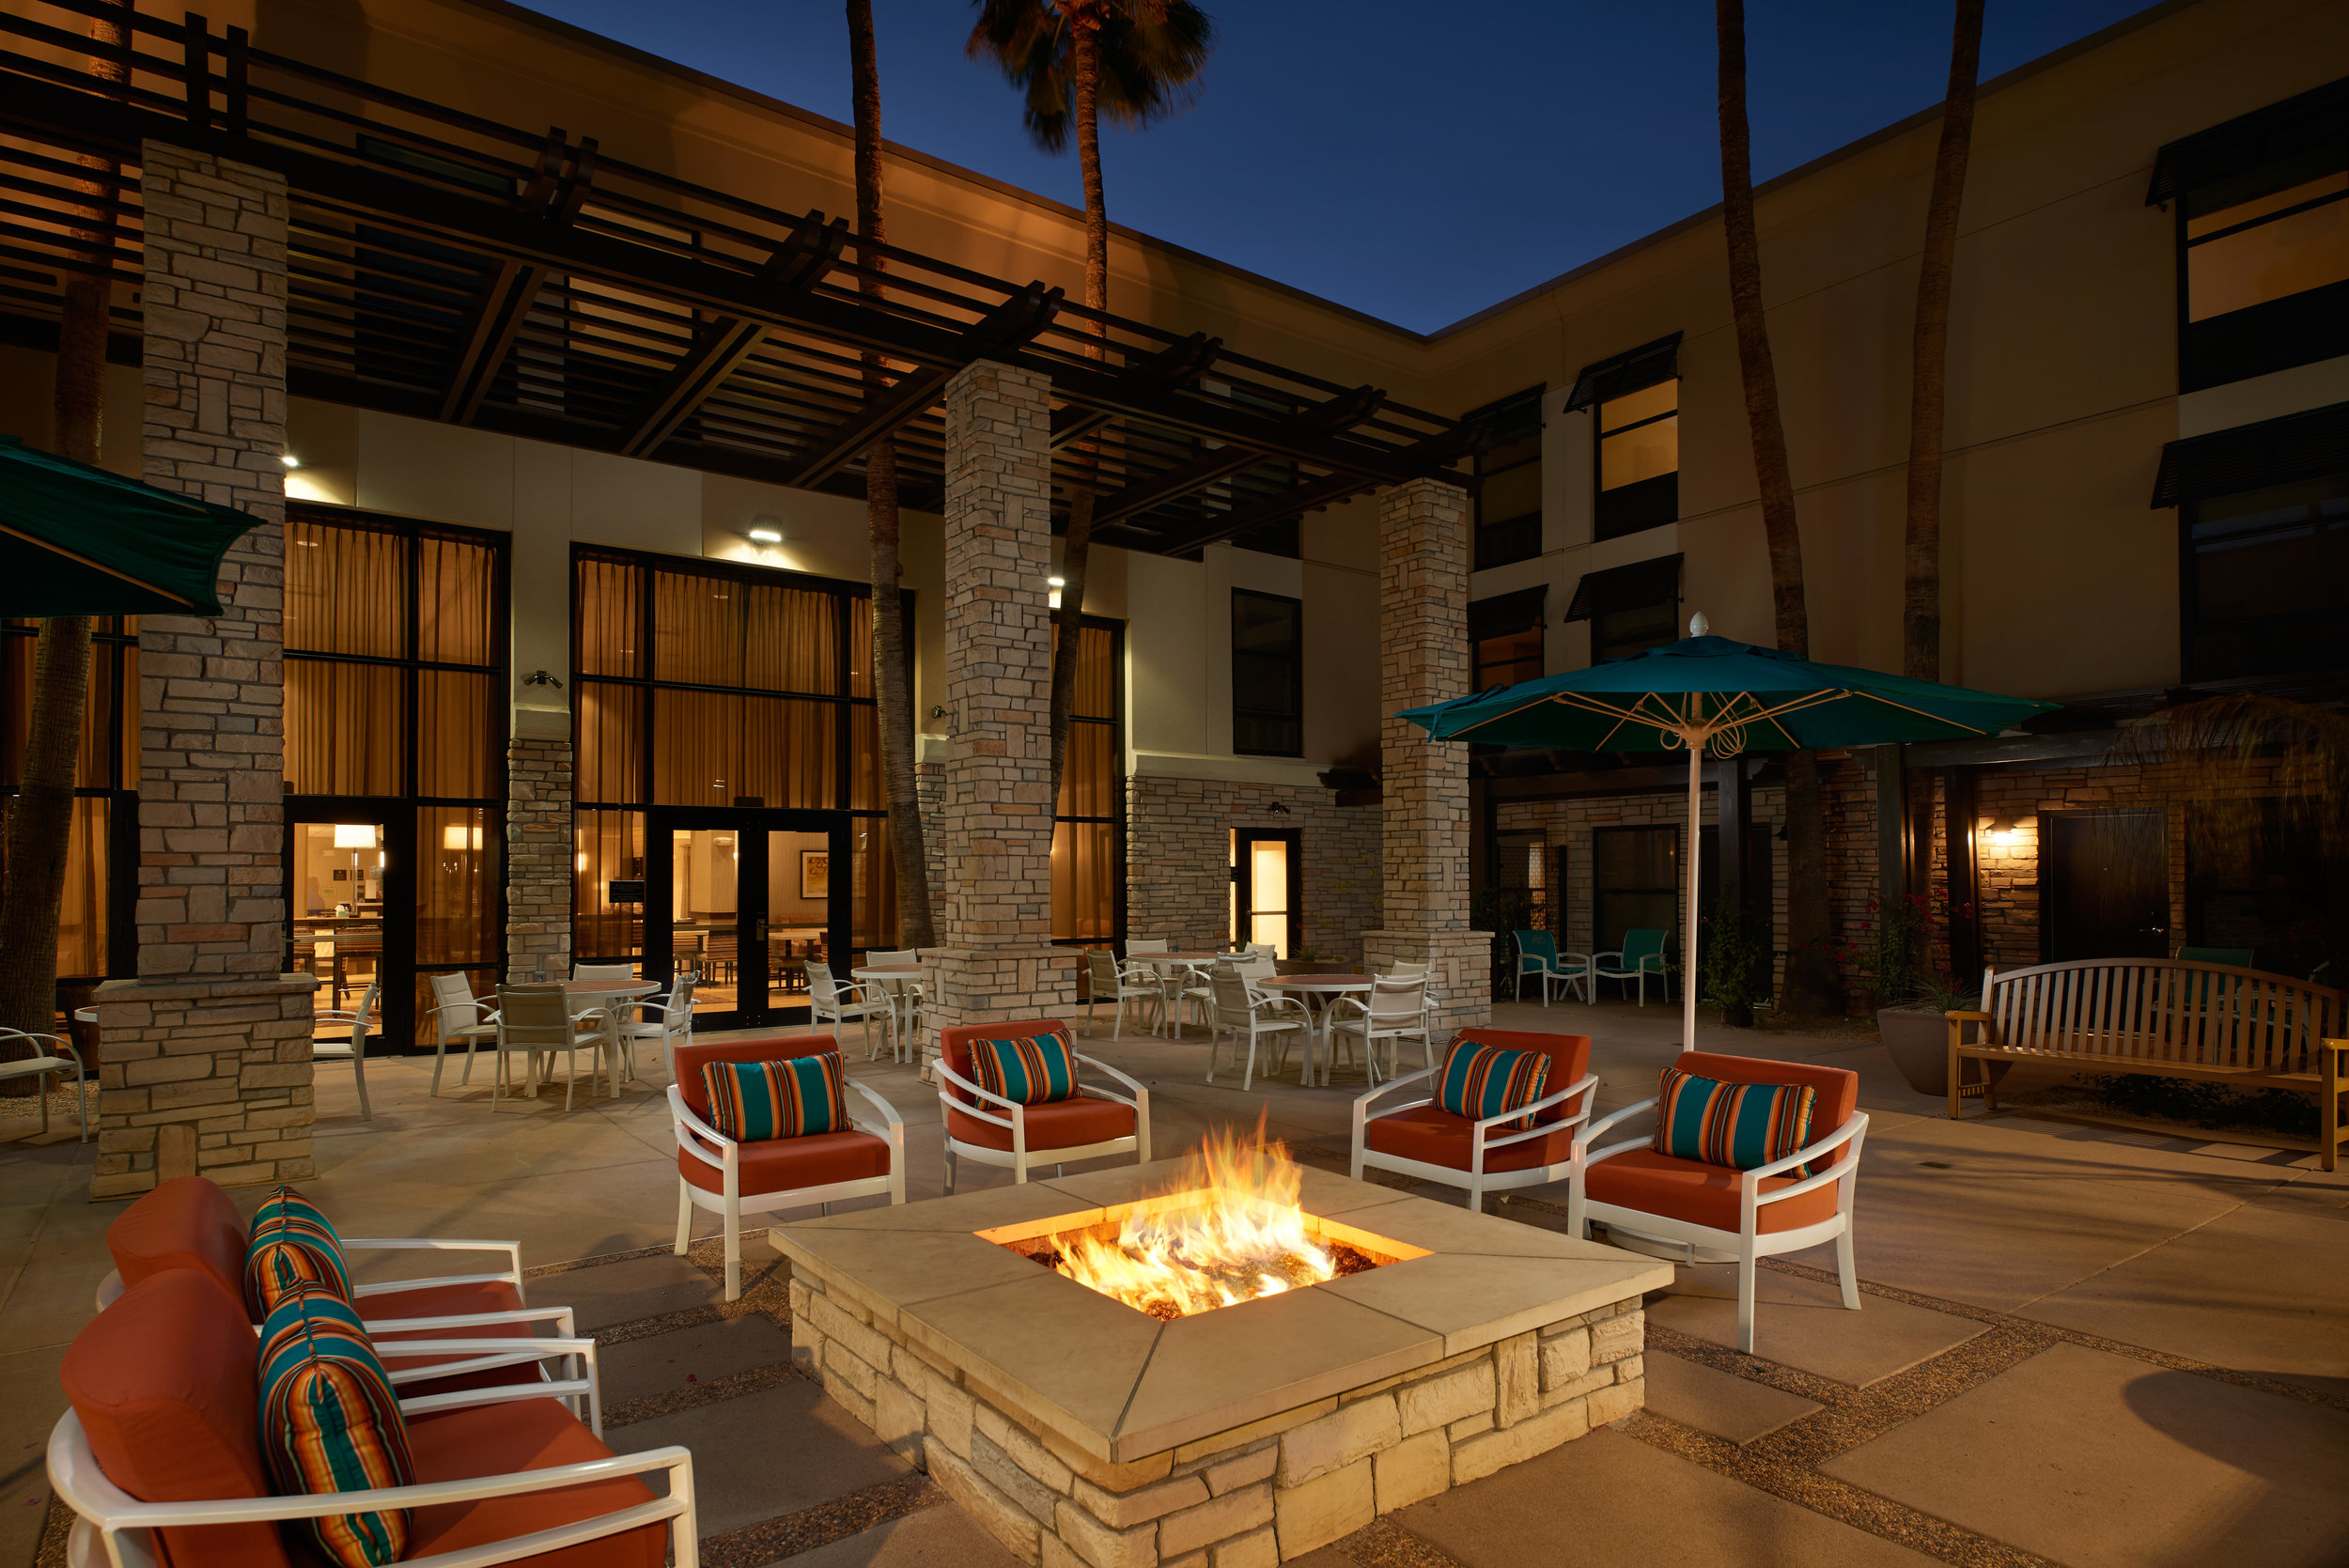 Hampton-Inn-and-Suites-Scottsdale-Shea-Courtyard.jpg